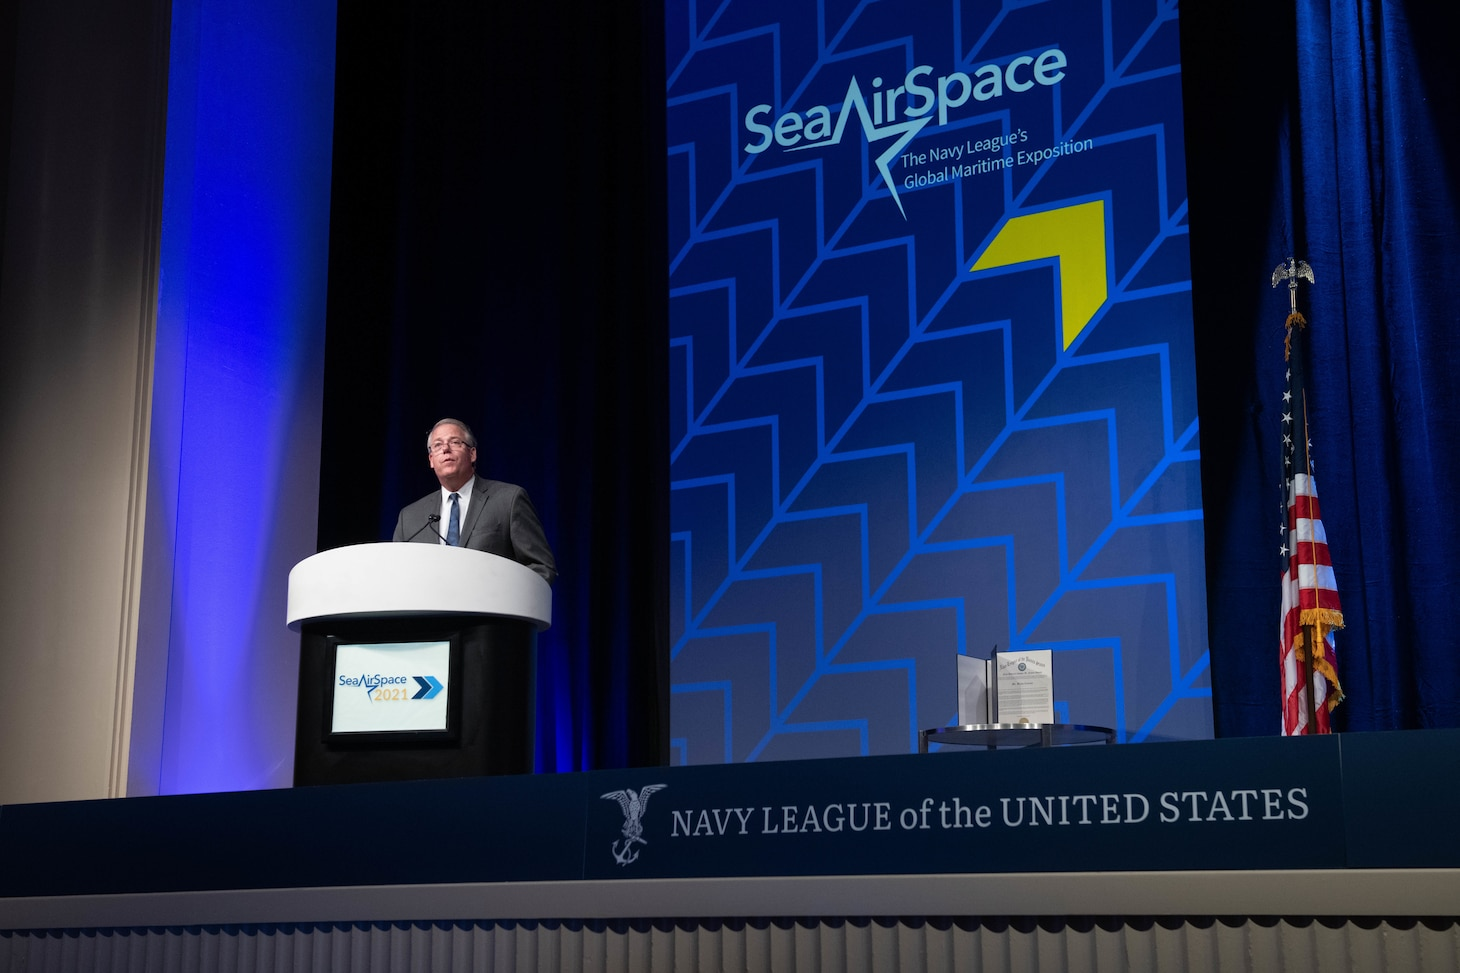 The Honorable Thomas Harker, Secretary of the Navy (acting) speaks at the Sea-Air-Space Exposition.